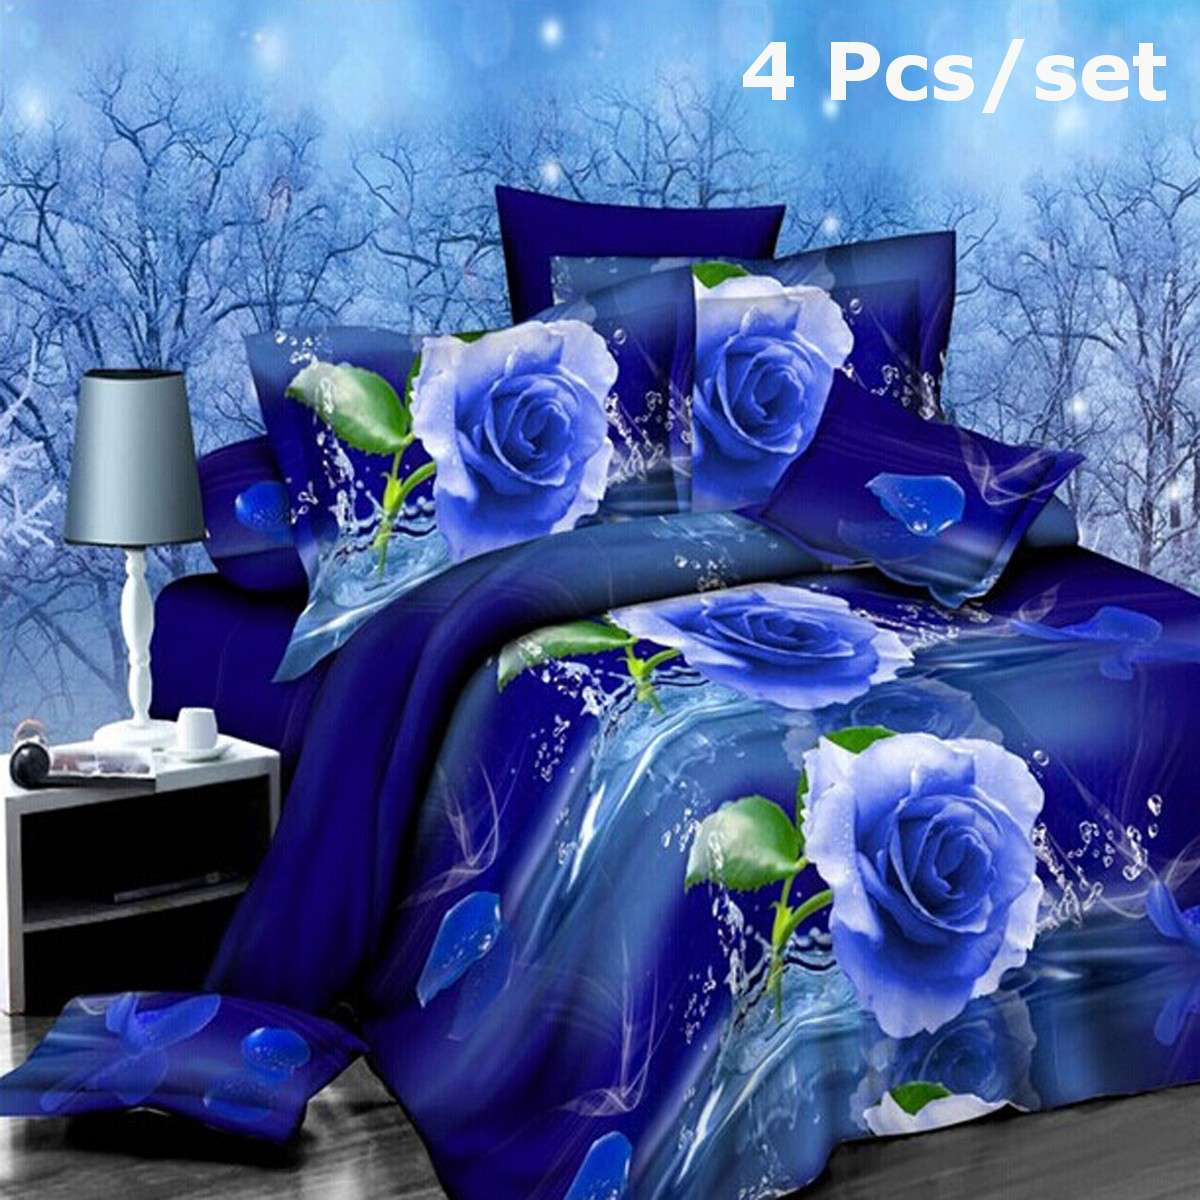 4Pcs 3D Printing Rose Bedding Set Quilt Cover Pillowcases Bed Sheets Set Queen Size Bedclothes Blue